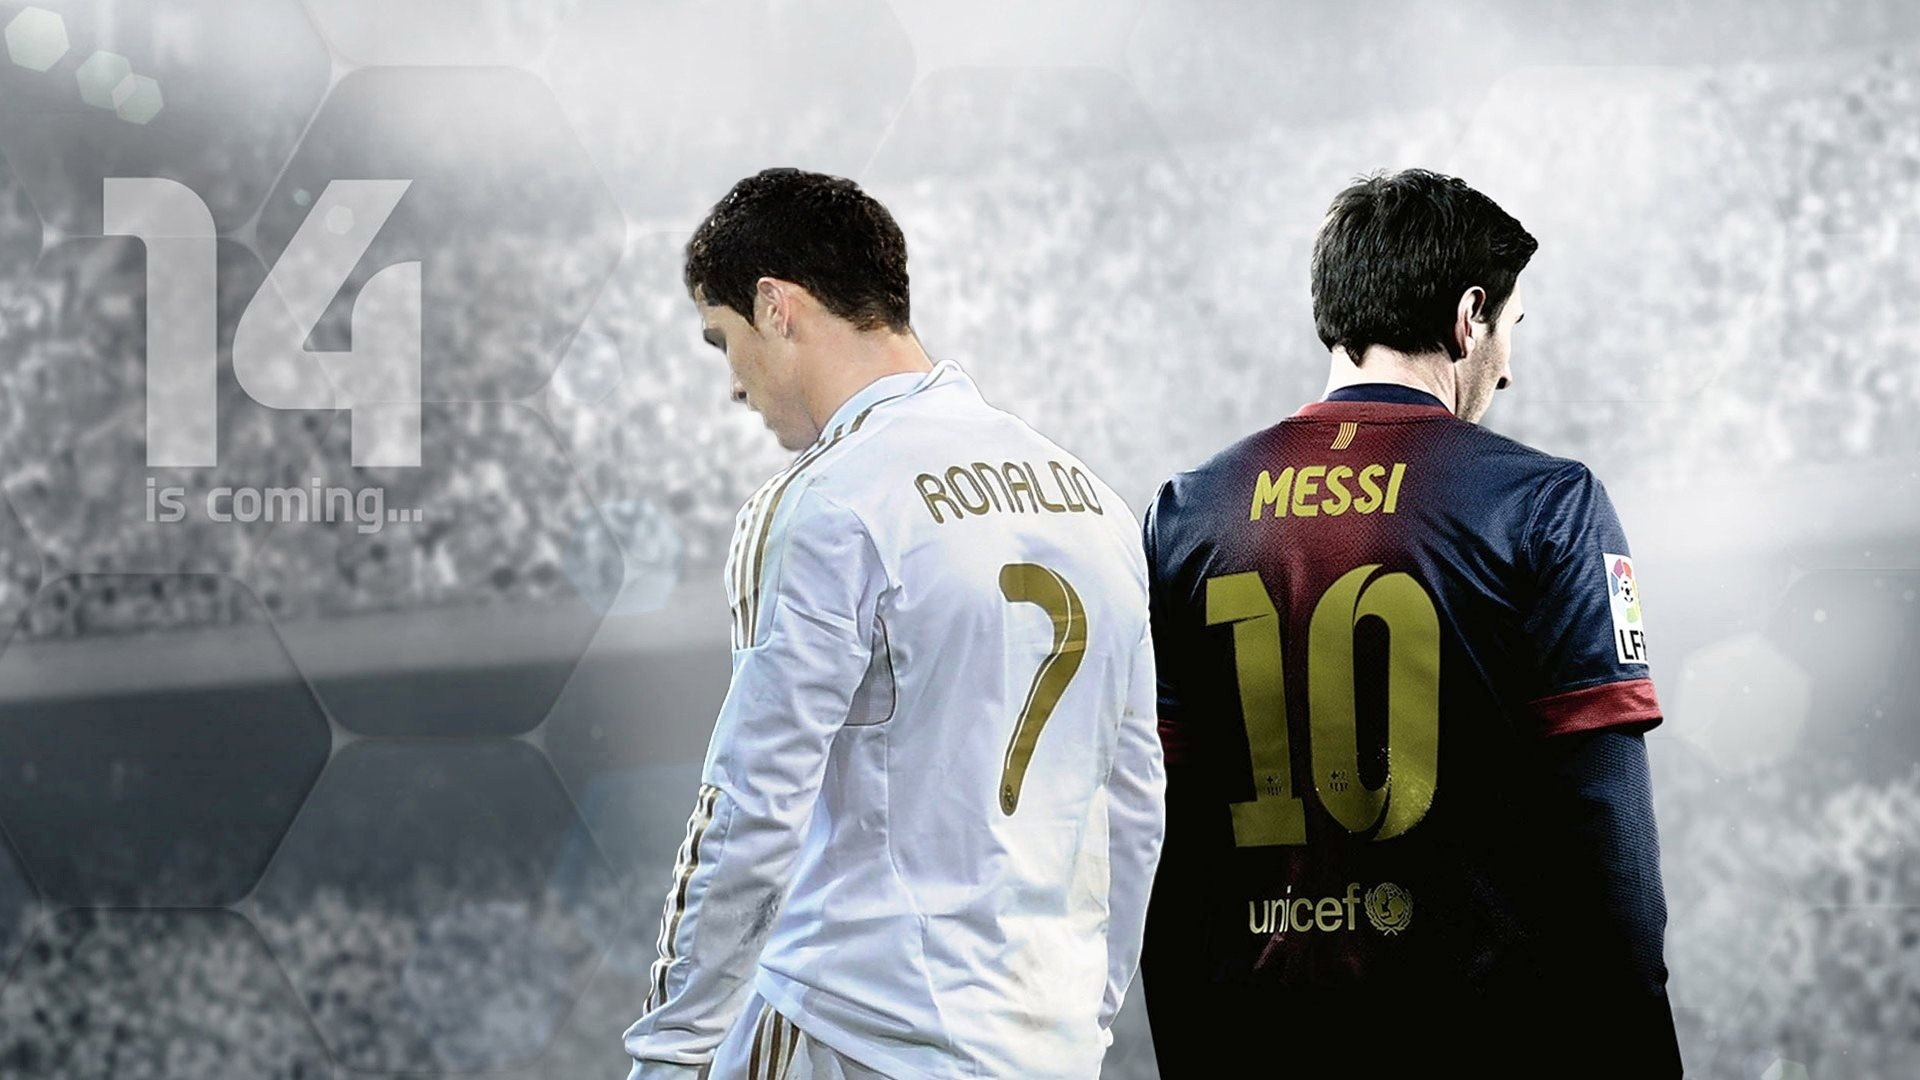 14 fifa 14 hd wallpapers background images wallpaper abyss hd wallpaper background image id464254 1920x1080 video game fifa 14 voltagebd Images